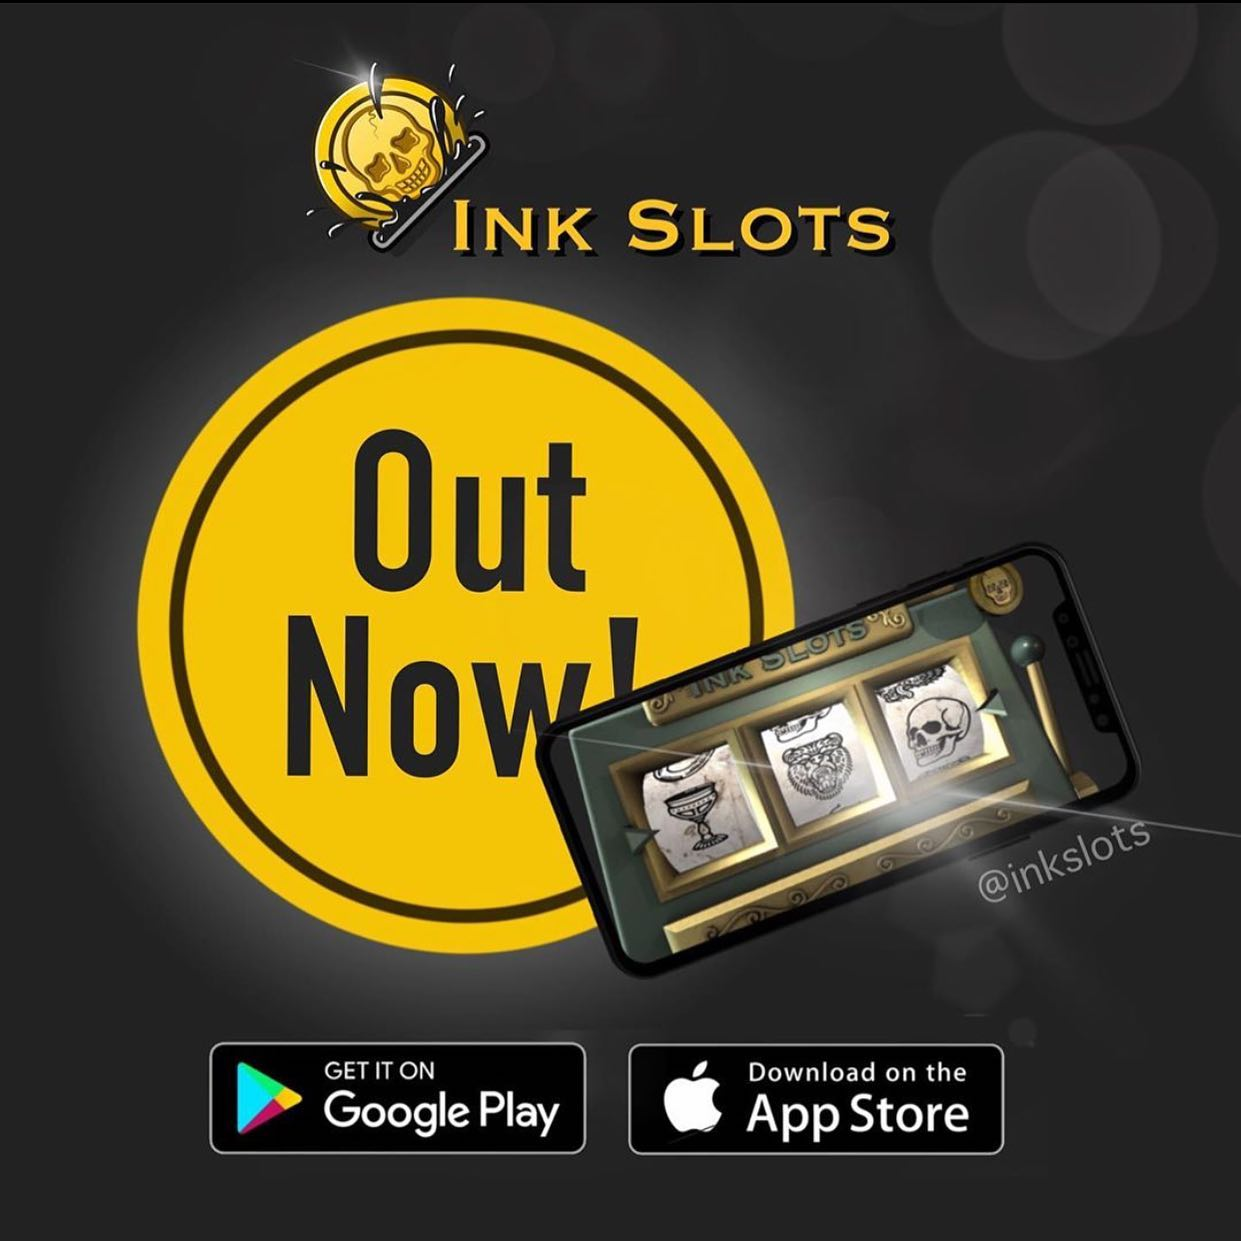 Our granda @vik_b_tattooer has been busting ass to produce this app for you all to get your creative juices flowing and it's now LIVE on your app stores.  Check out @inkslots now!!!!!! ———— ———— ️01315582974 artwork@studioxiii.tattoo studioxiii tattoos tattooed tattooflash blackworkers bandg realism realistictattoo skull skinartmag skulltattoo lion liontattoo tattooartist edinburghtattooartist edinburghtattoo girltattoo blackclaw uktta ttt eztattoocartridges ukbta skindeep txtooing tattoomediaink thebesttattooartist tattoosnob tattooartistic